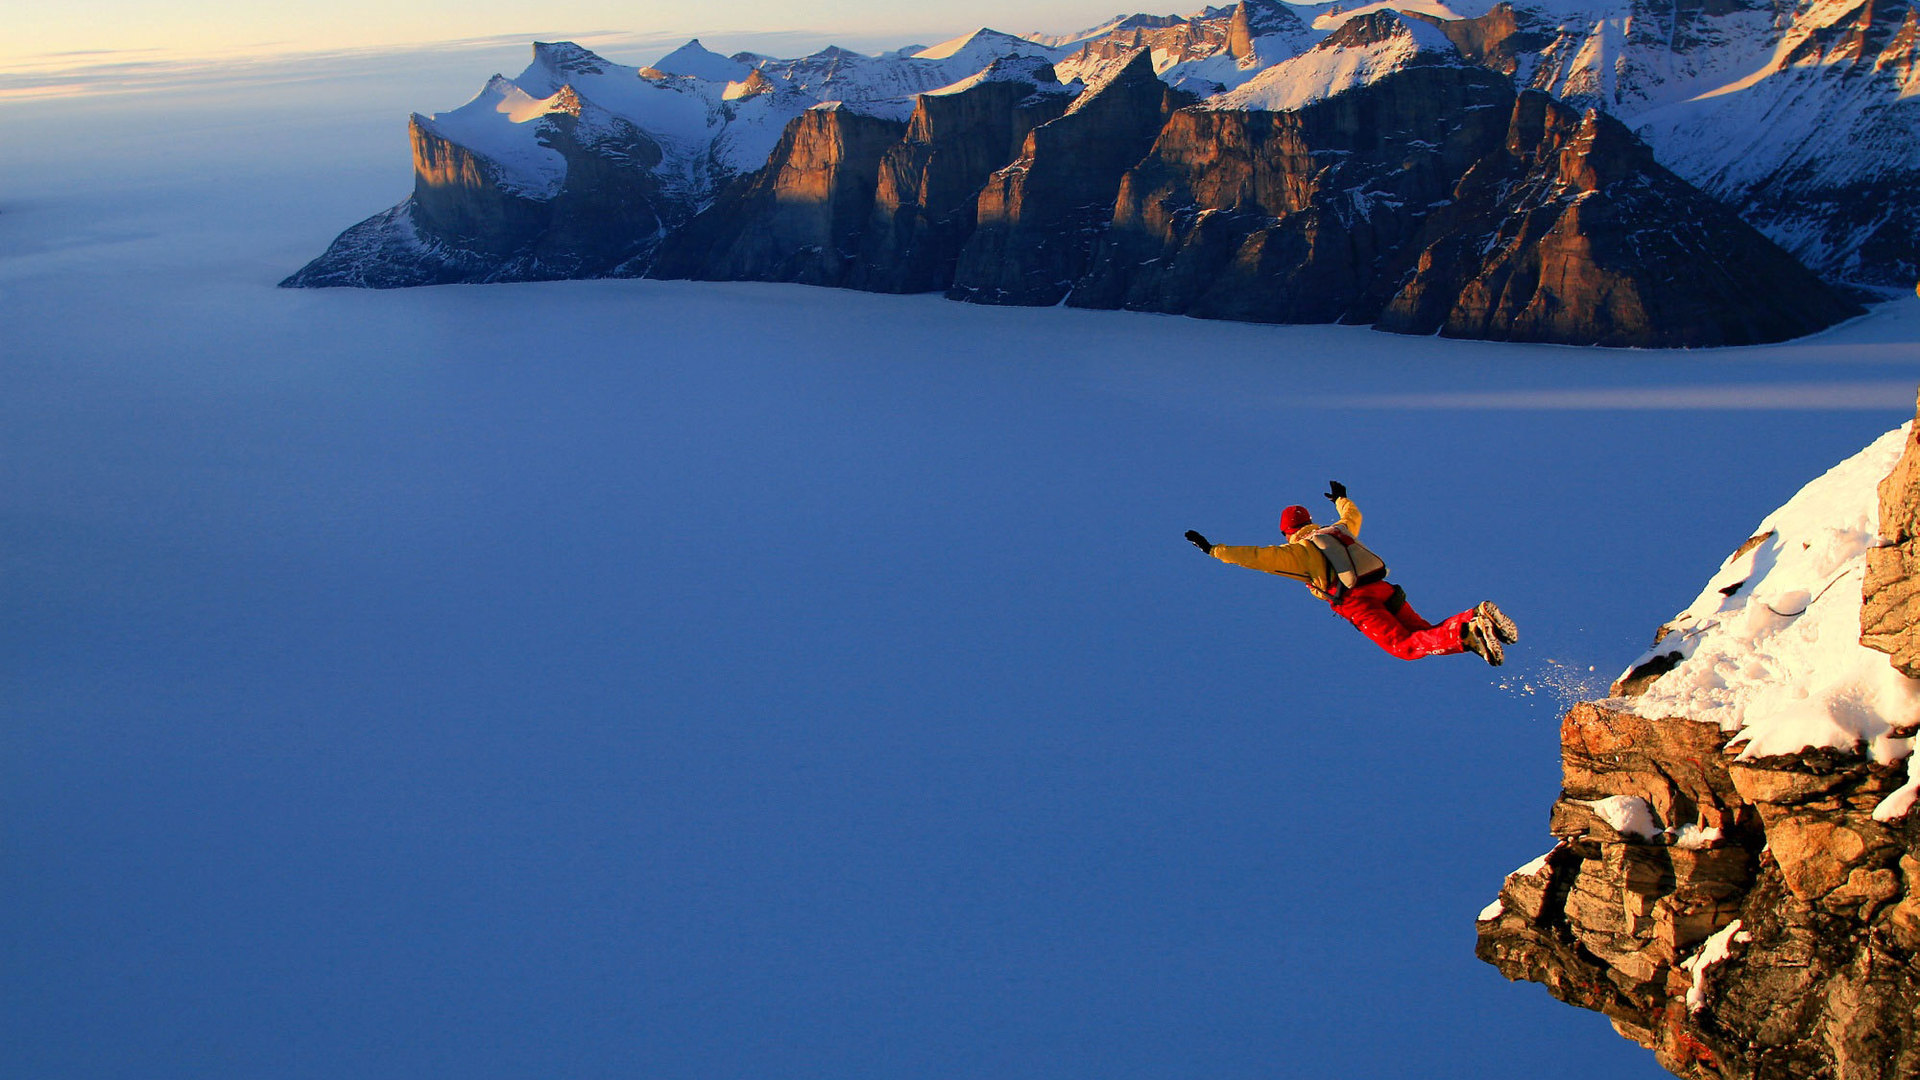 Awesome Skydive Wallpaper